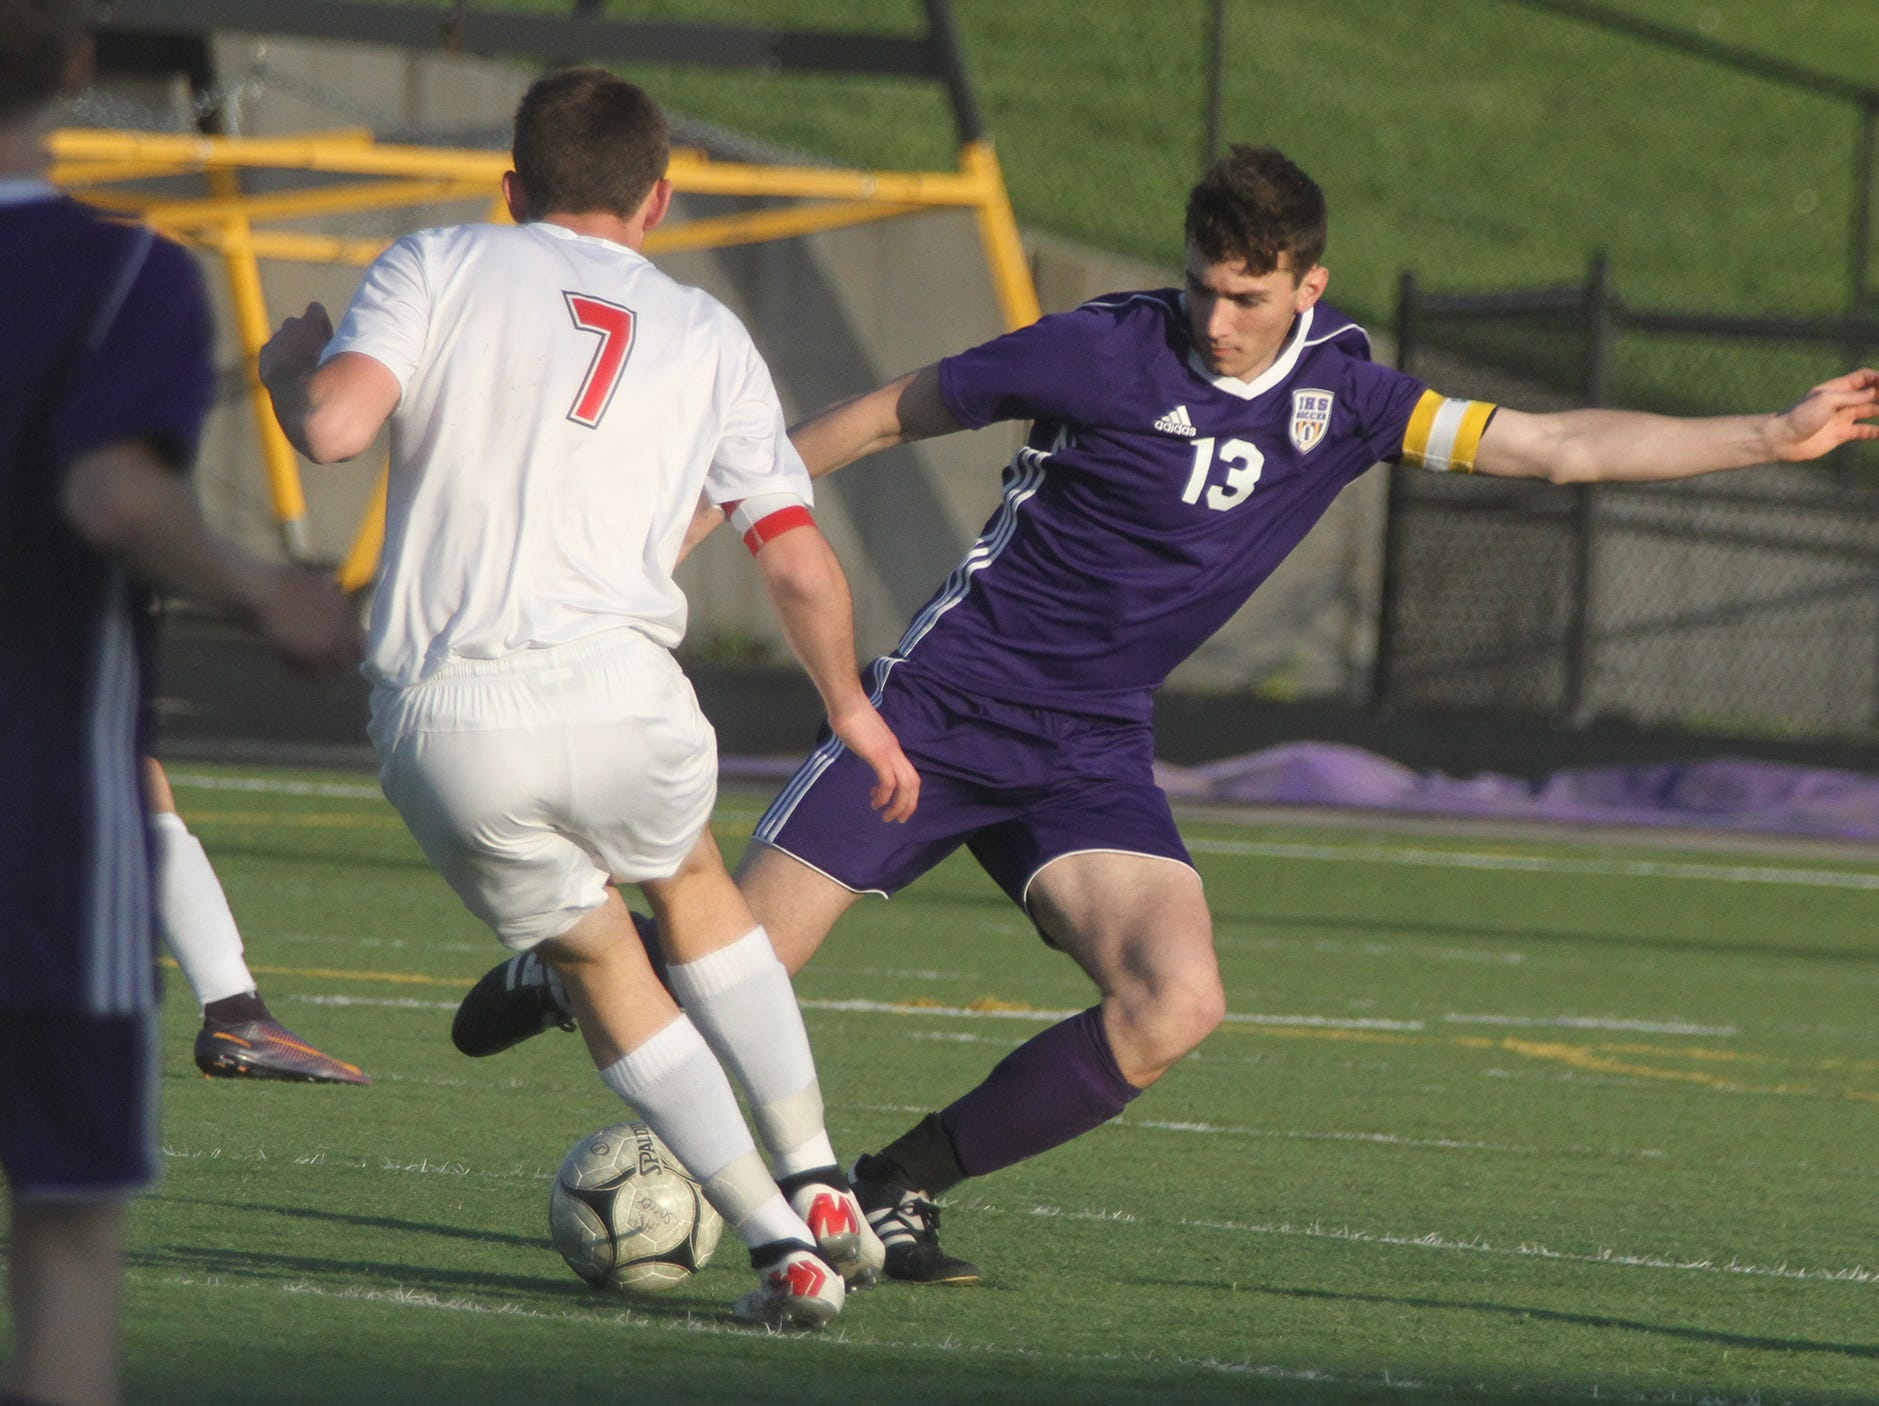 Indianola junior Andreas Miller knocks the ball away from Newton senior Jacob Murphy. Indianola beat Newton 2-0 at home in a Little Hawkeye Conference game.